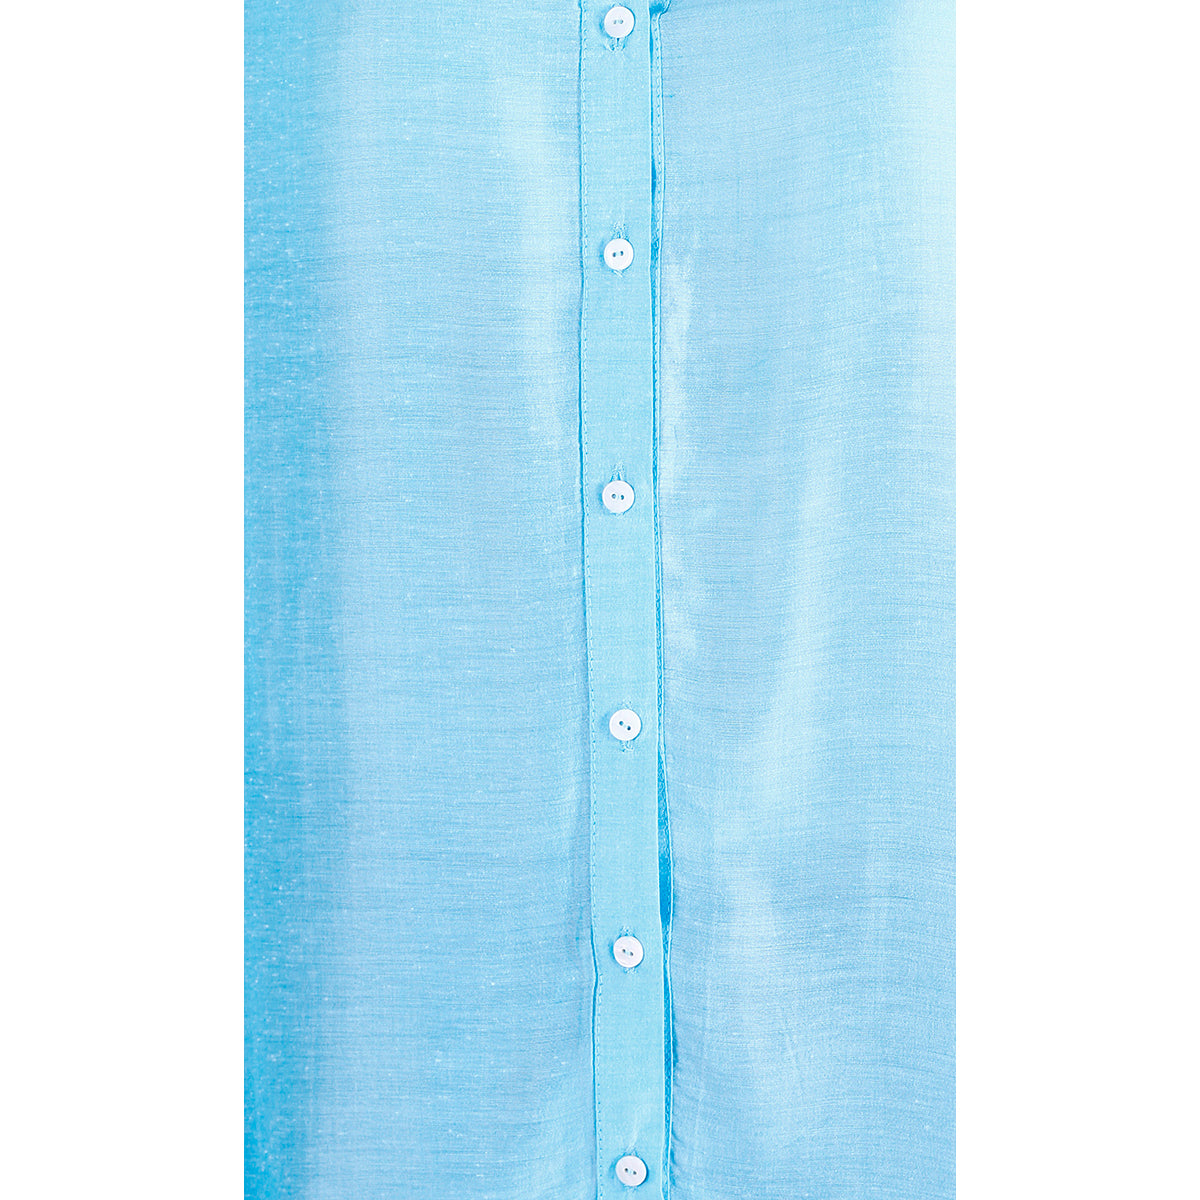 Women's Long Shirt Silk Blend Light Blue.